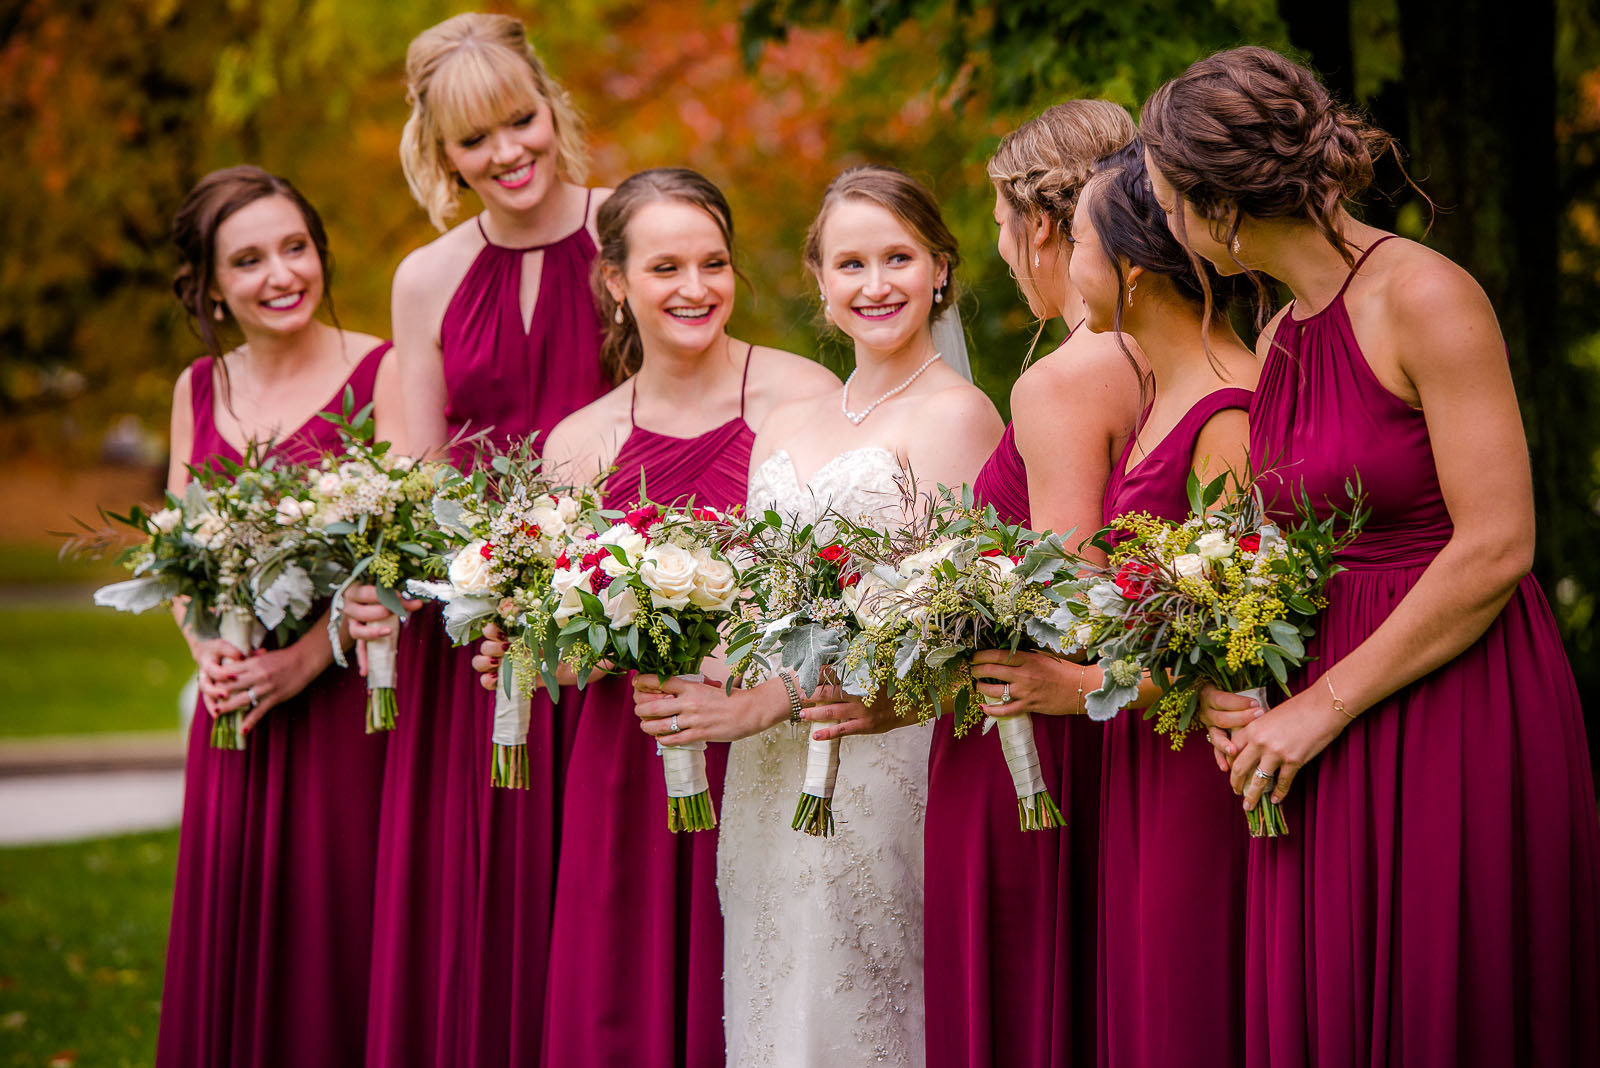 Eric_and_Christy_Photography_Blog_Wedding_Erica_Mike-26